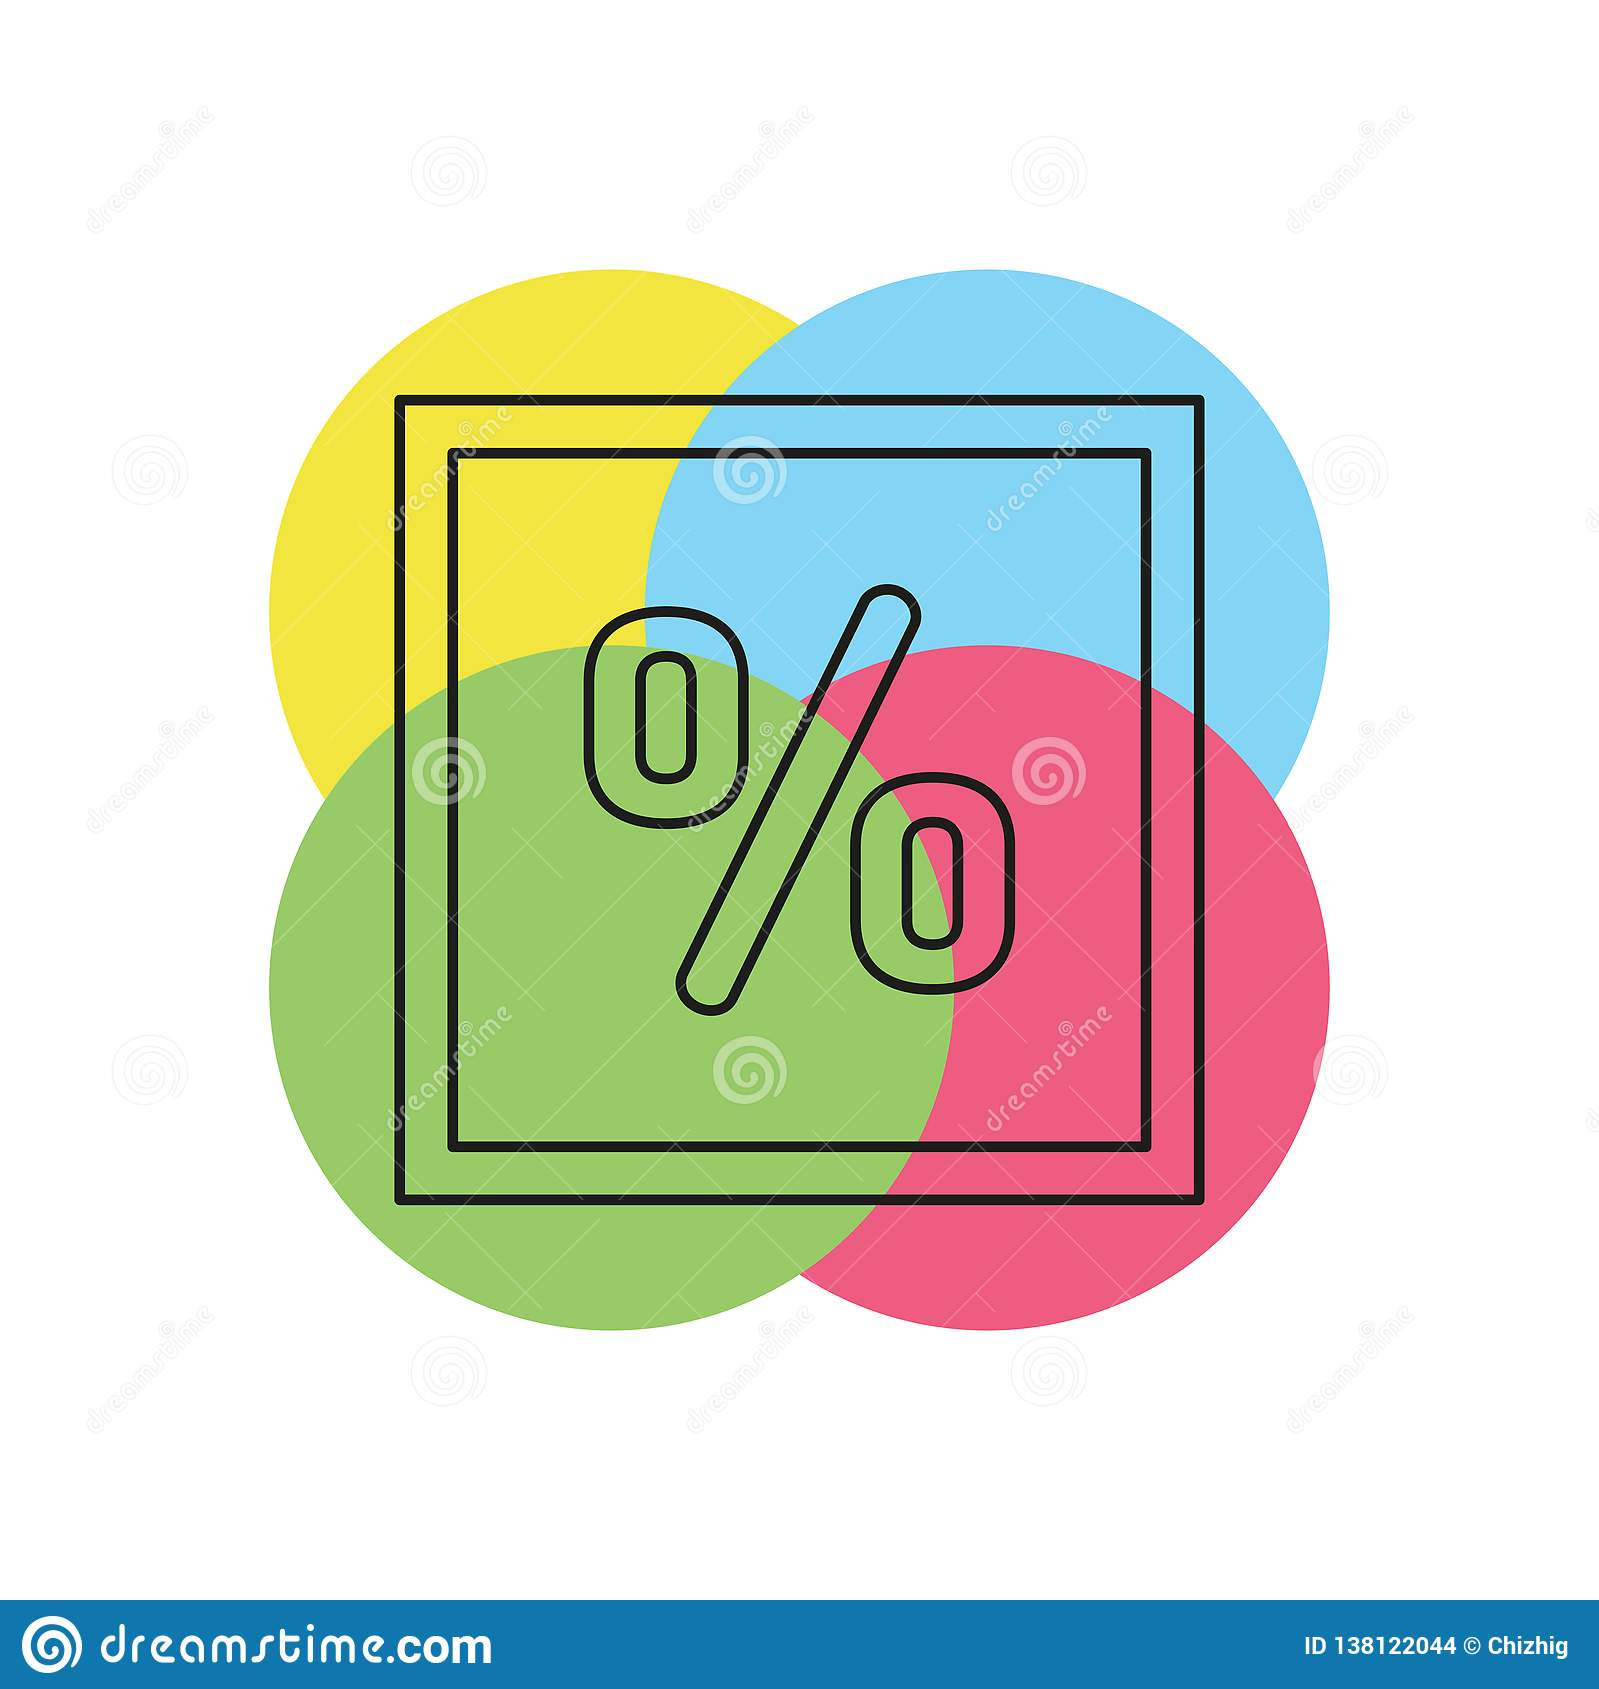 sale Discount percent - offer savings coupon